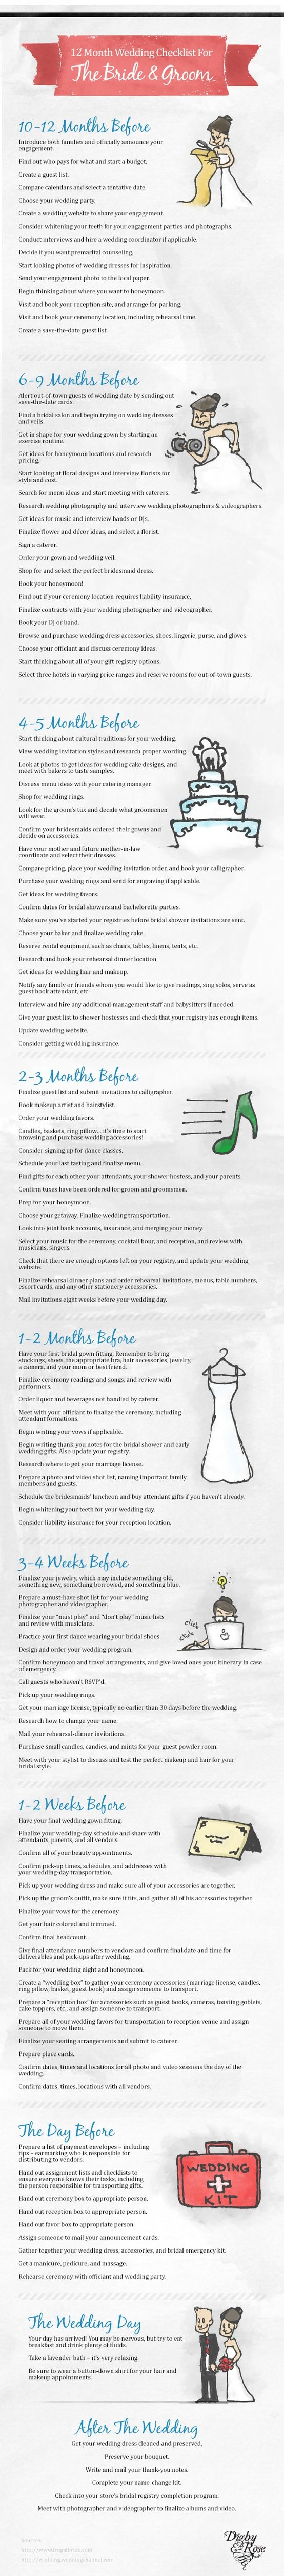 12 month wedding planning checklist: for my ladies getting married